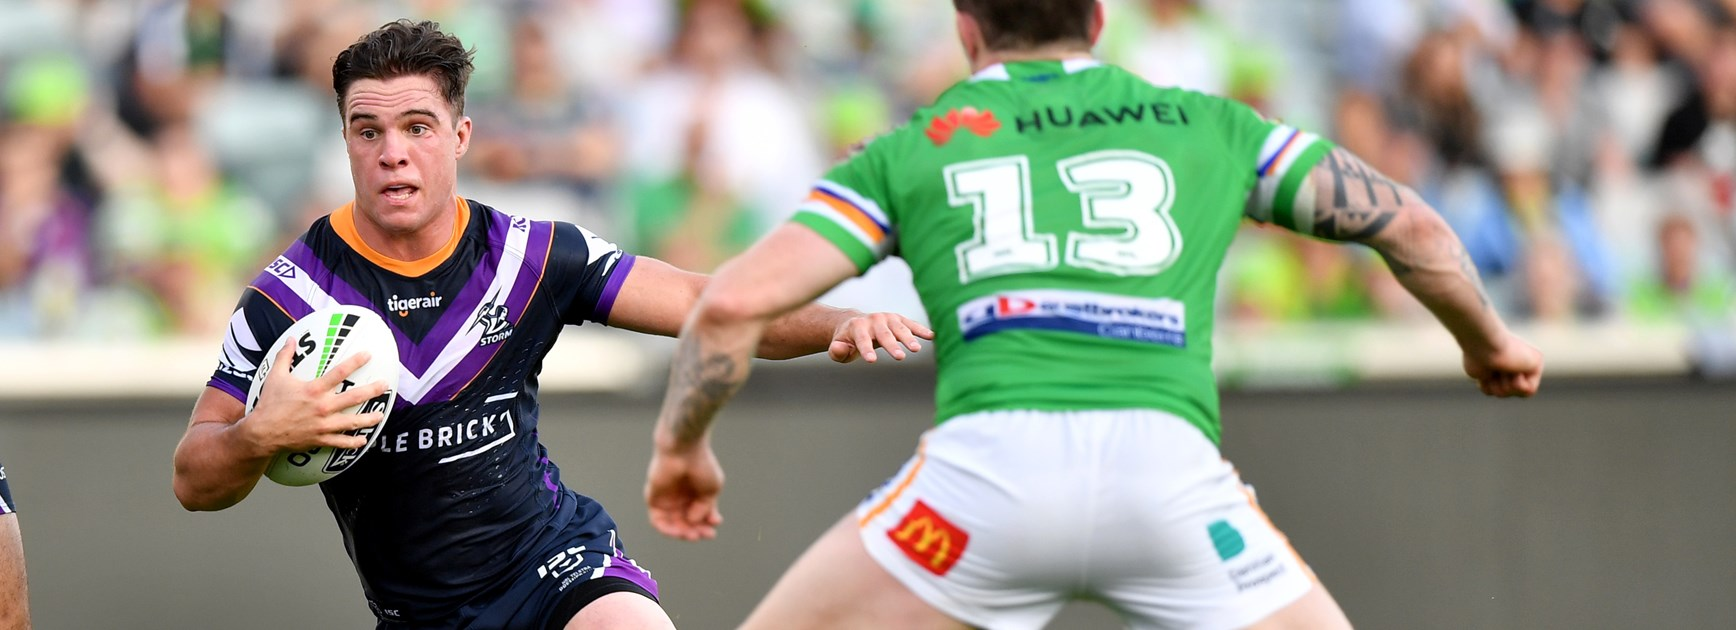 Croft emerges from Cronk's shadow